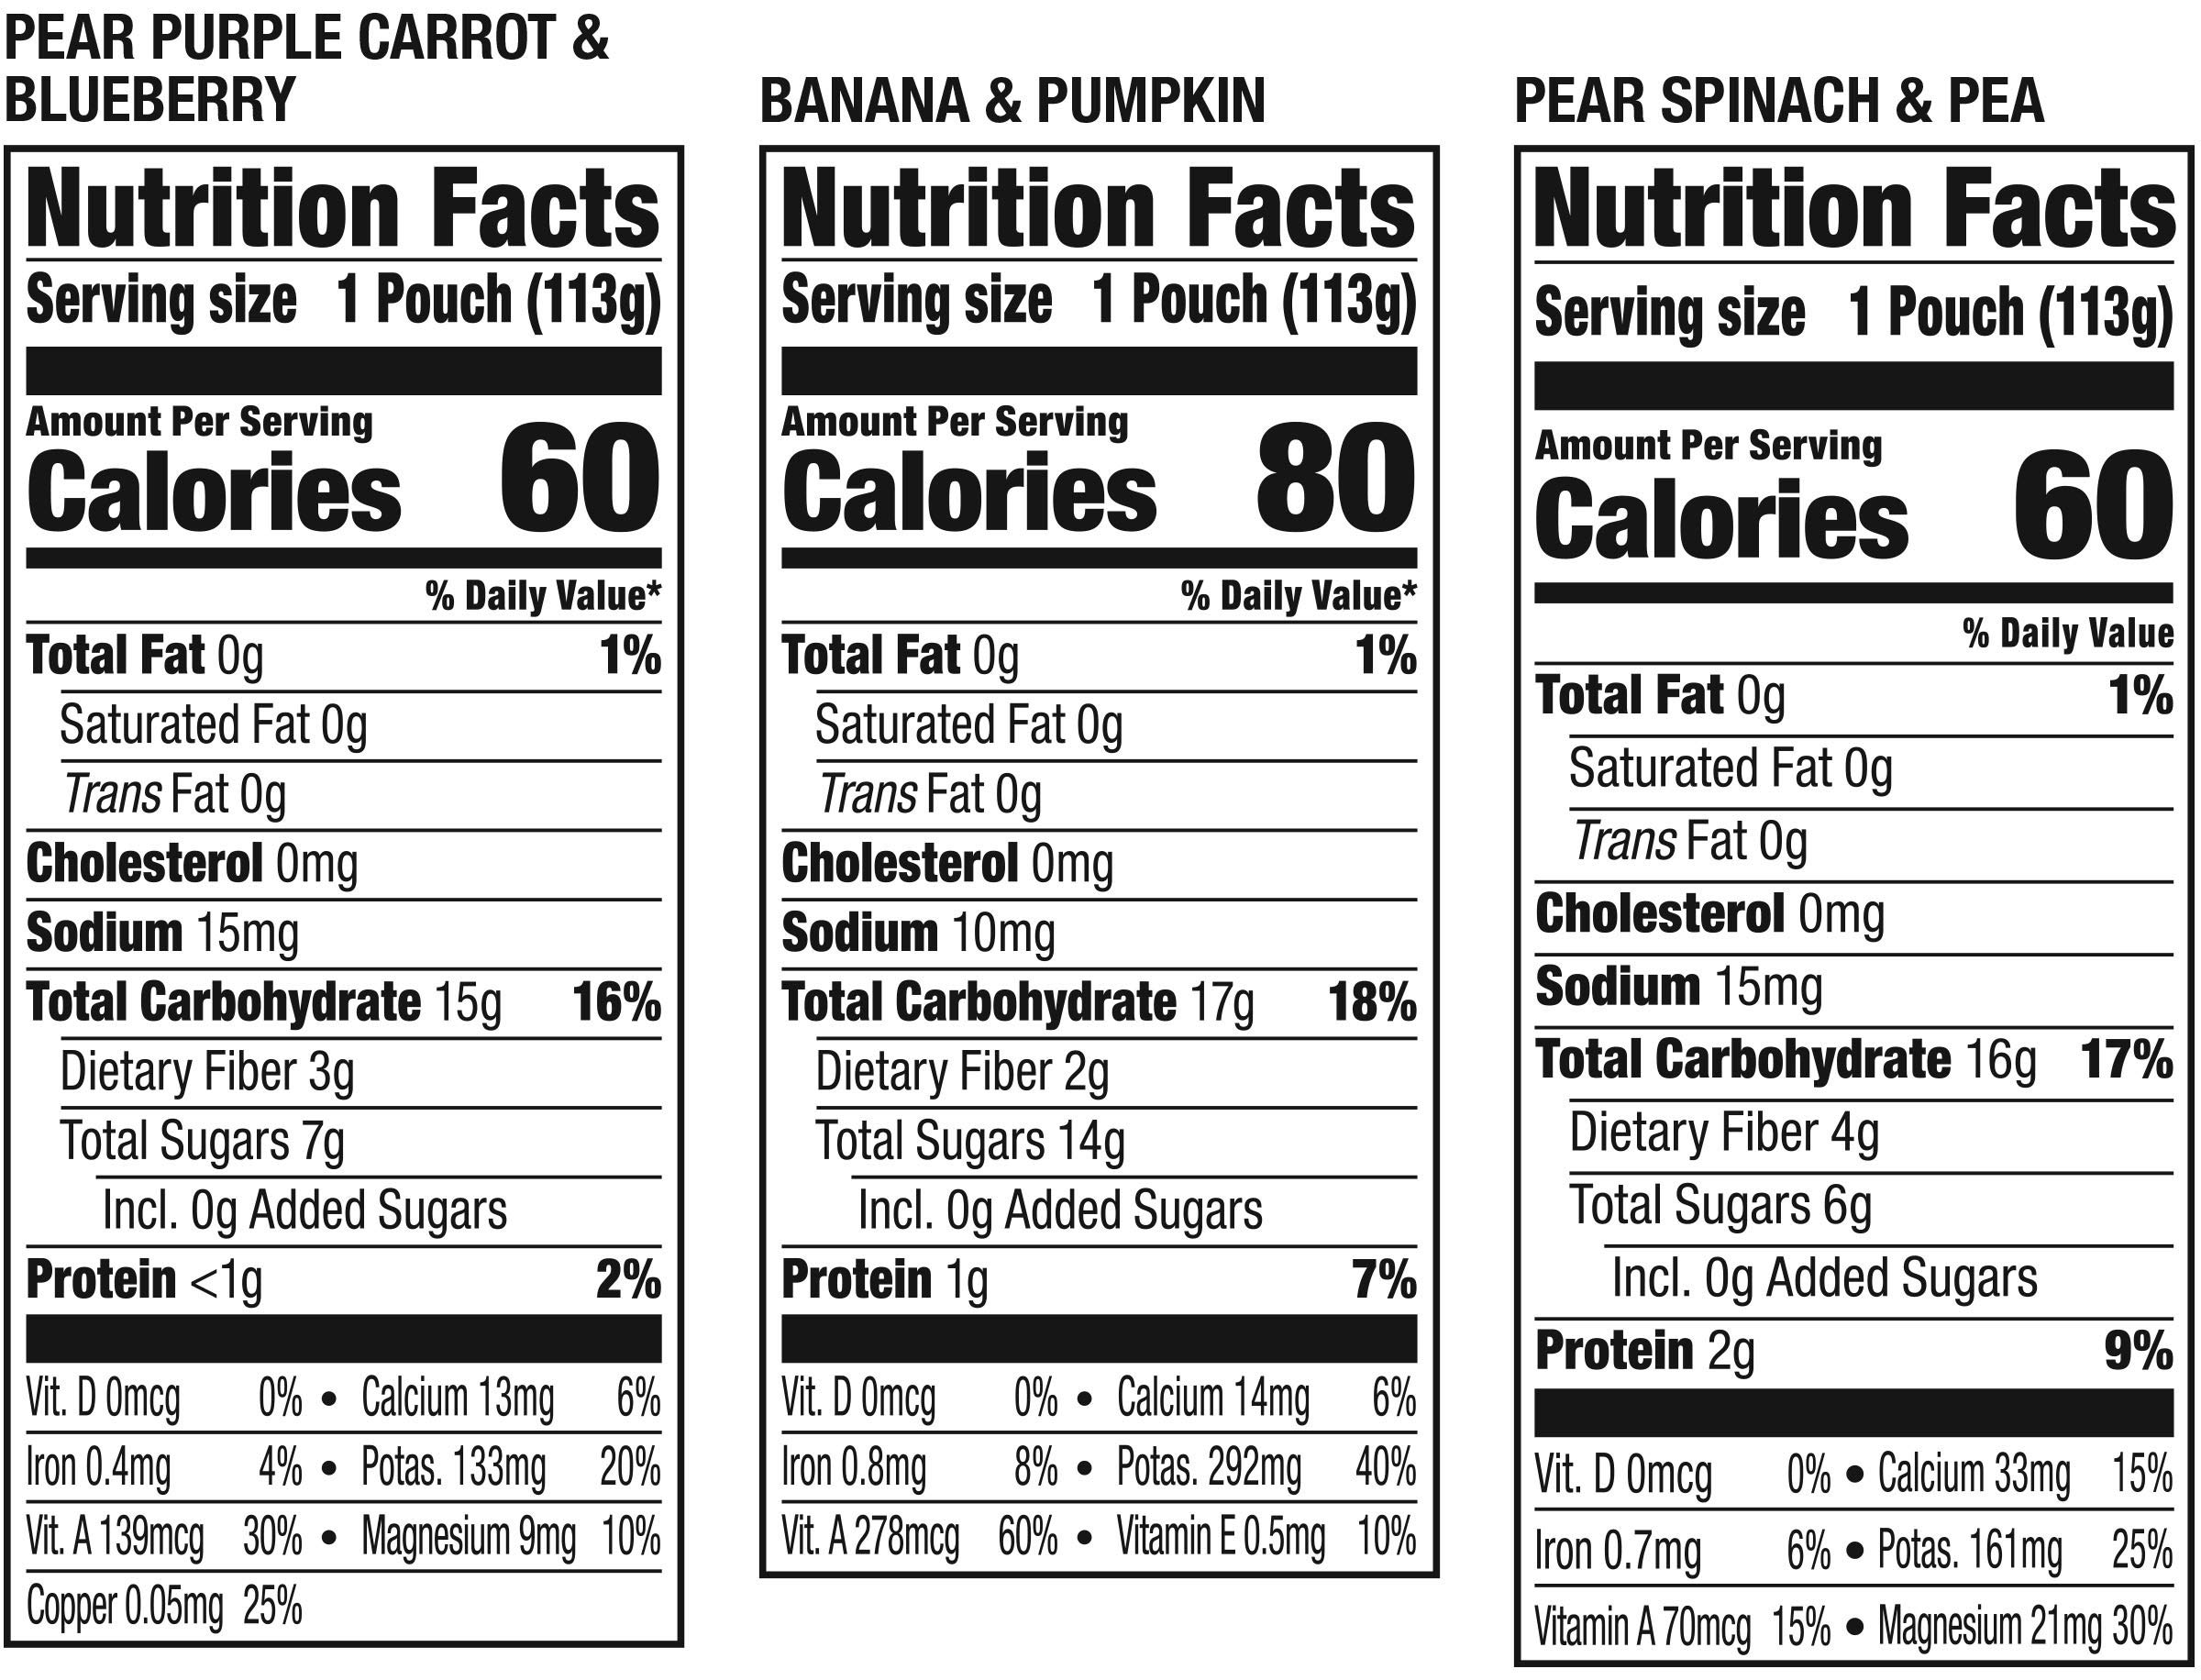 Plum Organics Stage 2, Organic Baby Food, Fruit and Veggie Variety Pack, 4 ounce pouch, Pack of 18 (Packaging May Vary) by Plum Organics (Image #2)